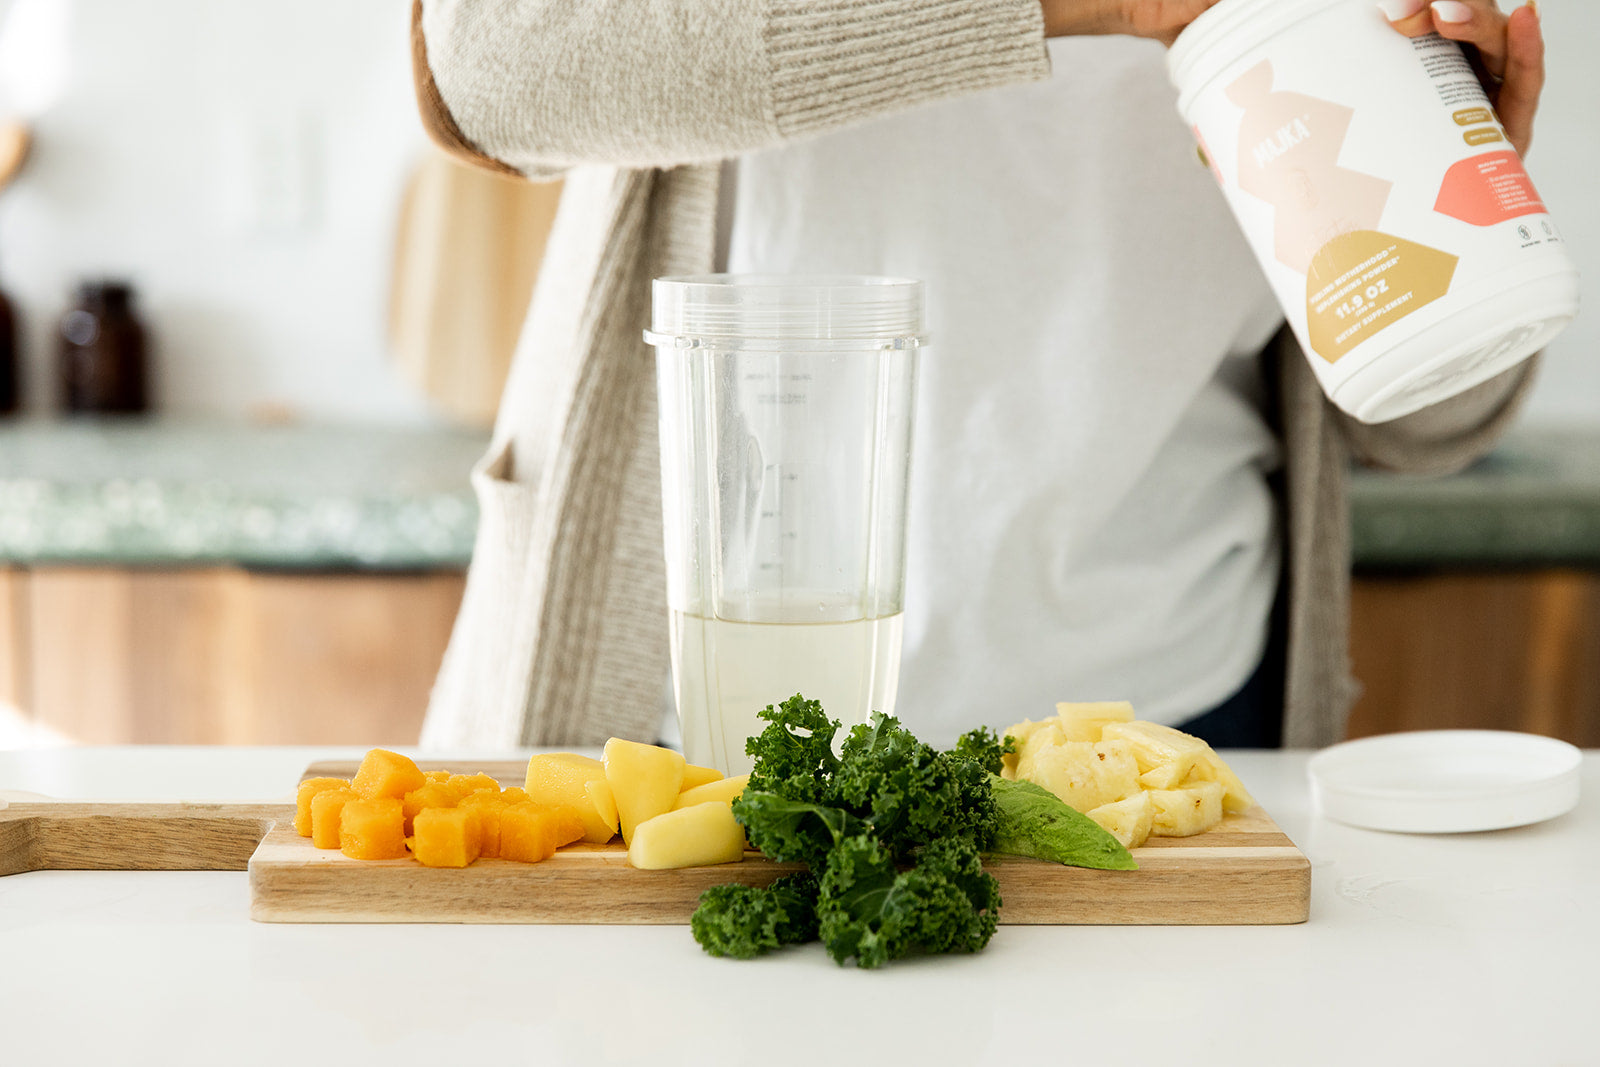 Ingredients of Green Peach Glow Smoothie for Weight Loss on Table